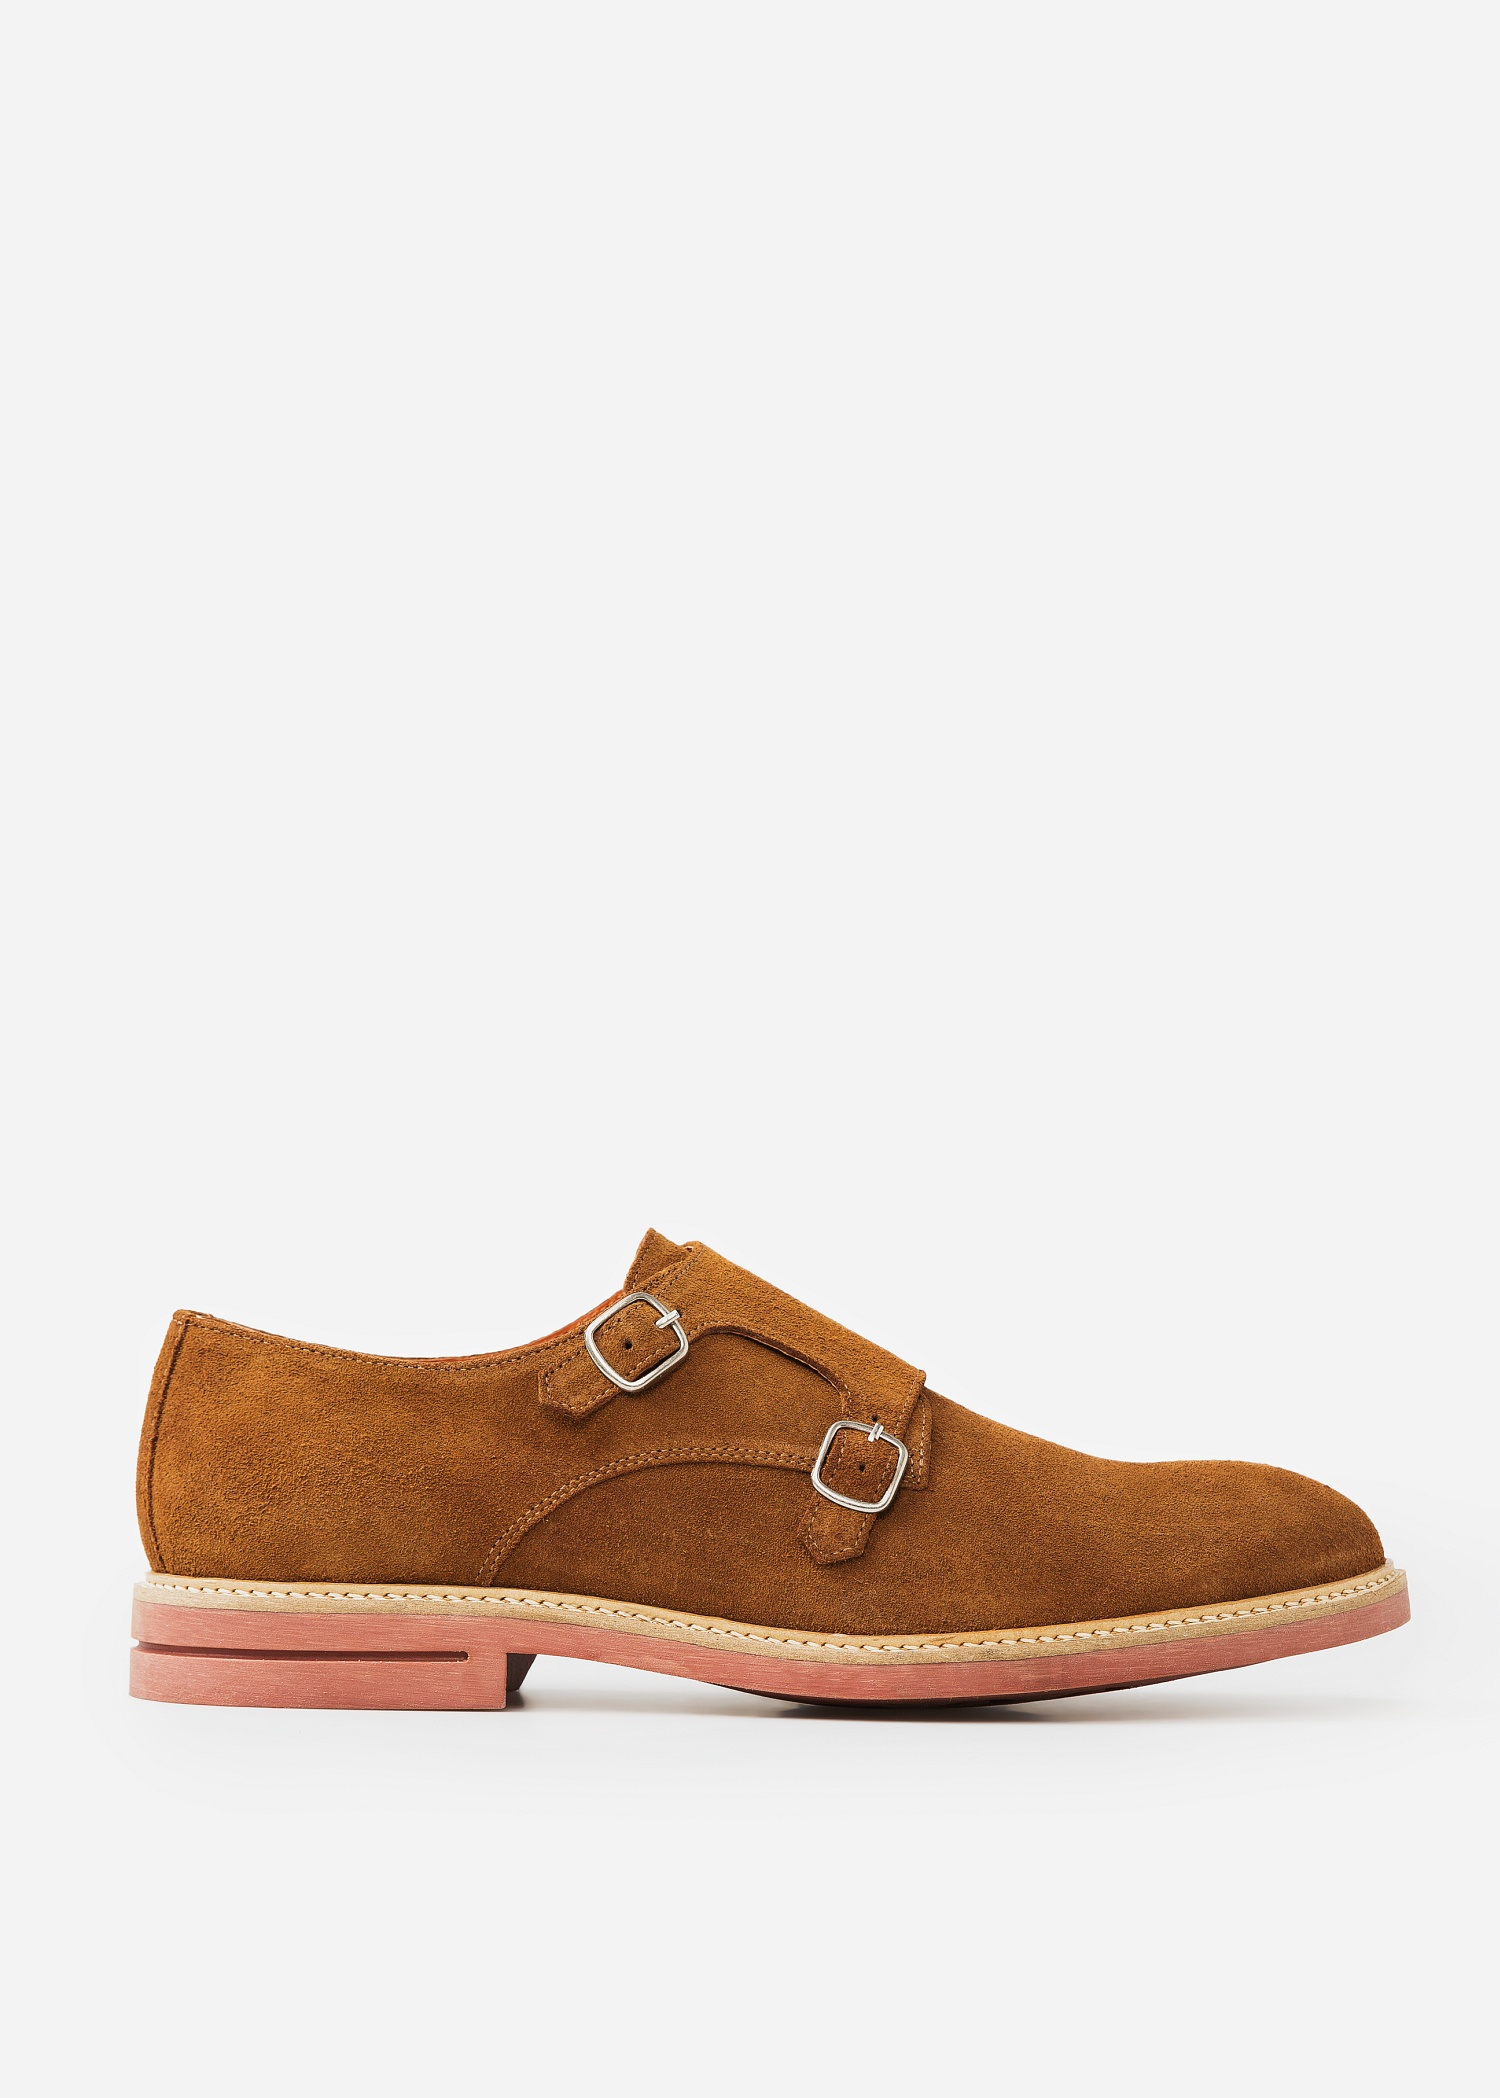 Lyst Mango Suede Monkstrap Shoes In Brown For Men